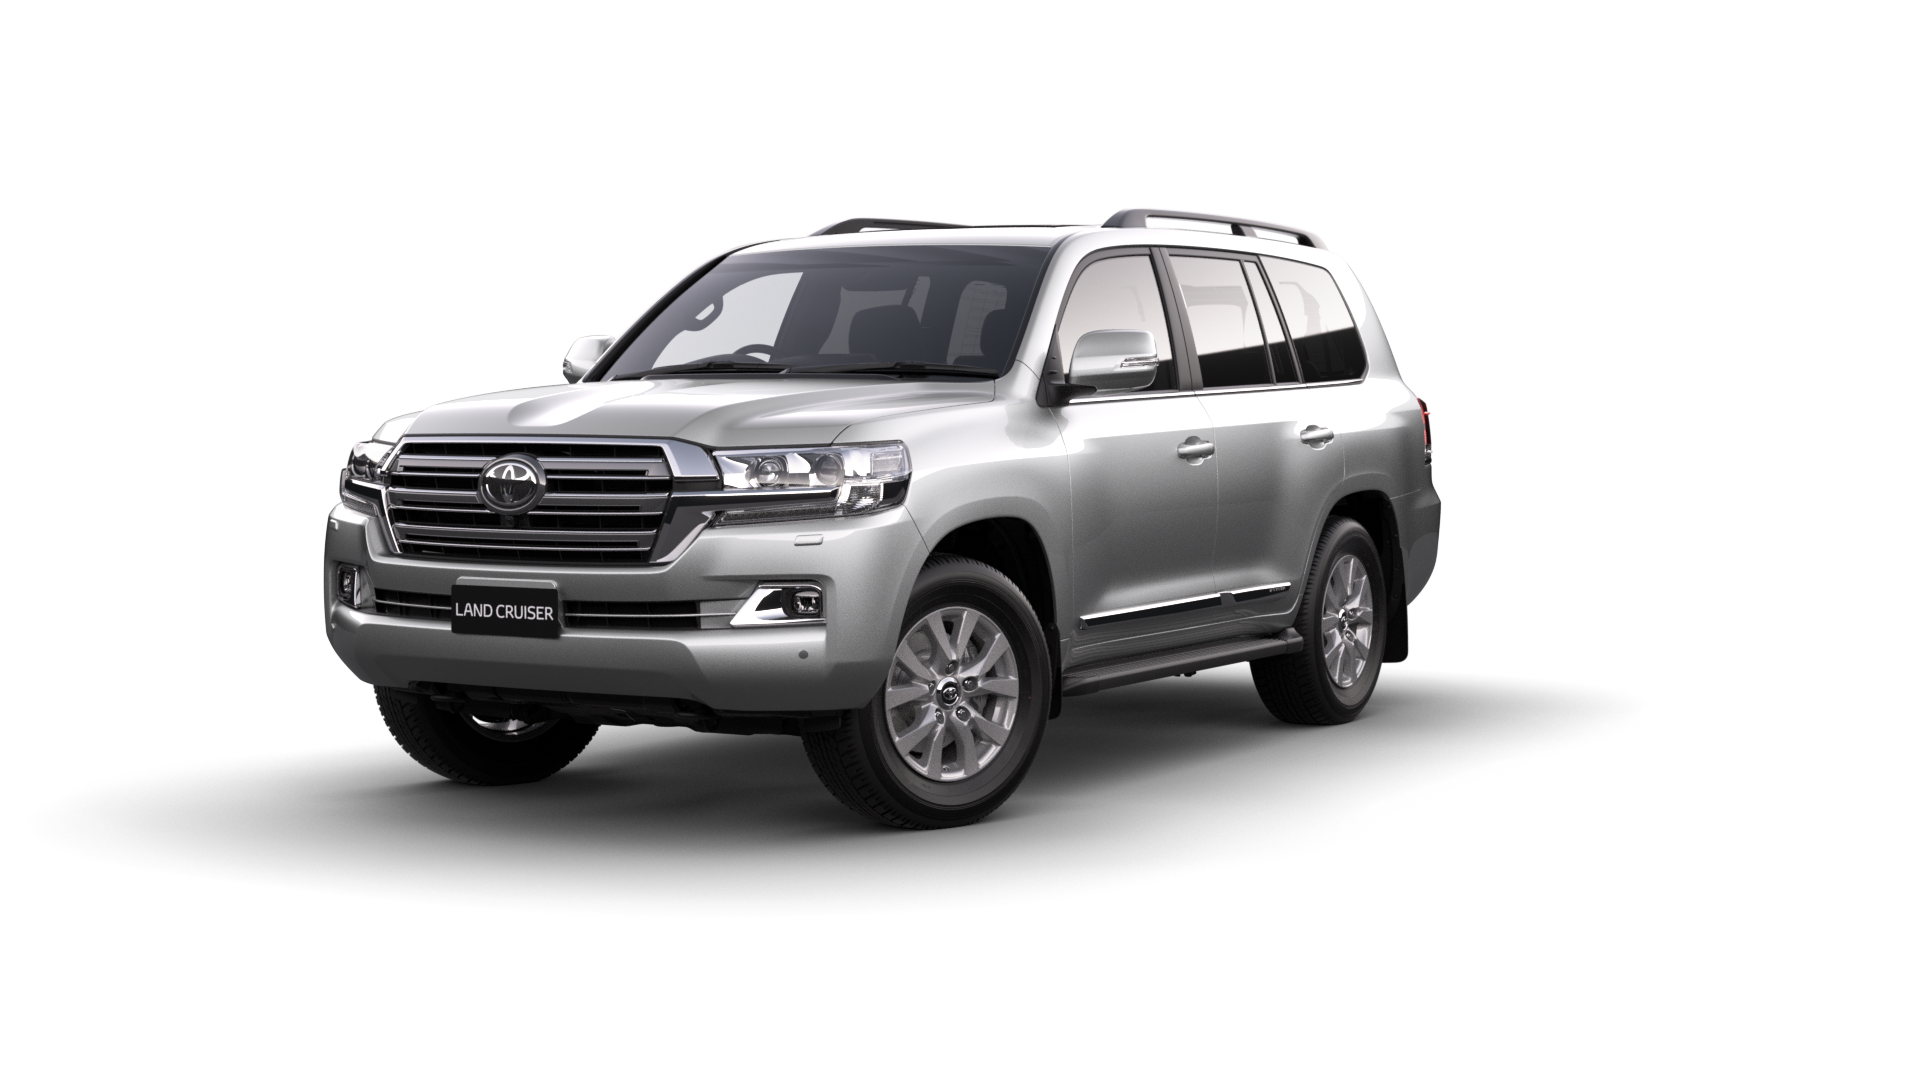 2016 toyota land cruiser hampton roads casey toyota casey toyota. Black Bedroom Furniture Sets. Home Design Ideas